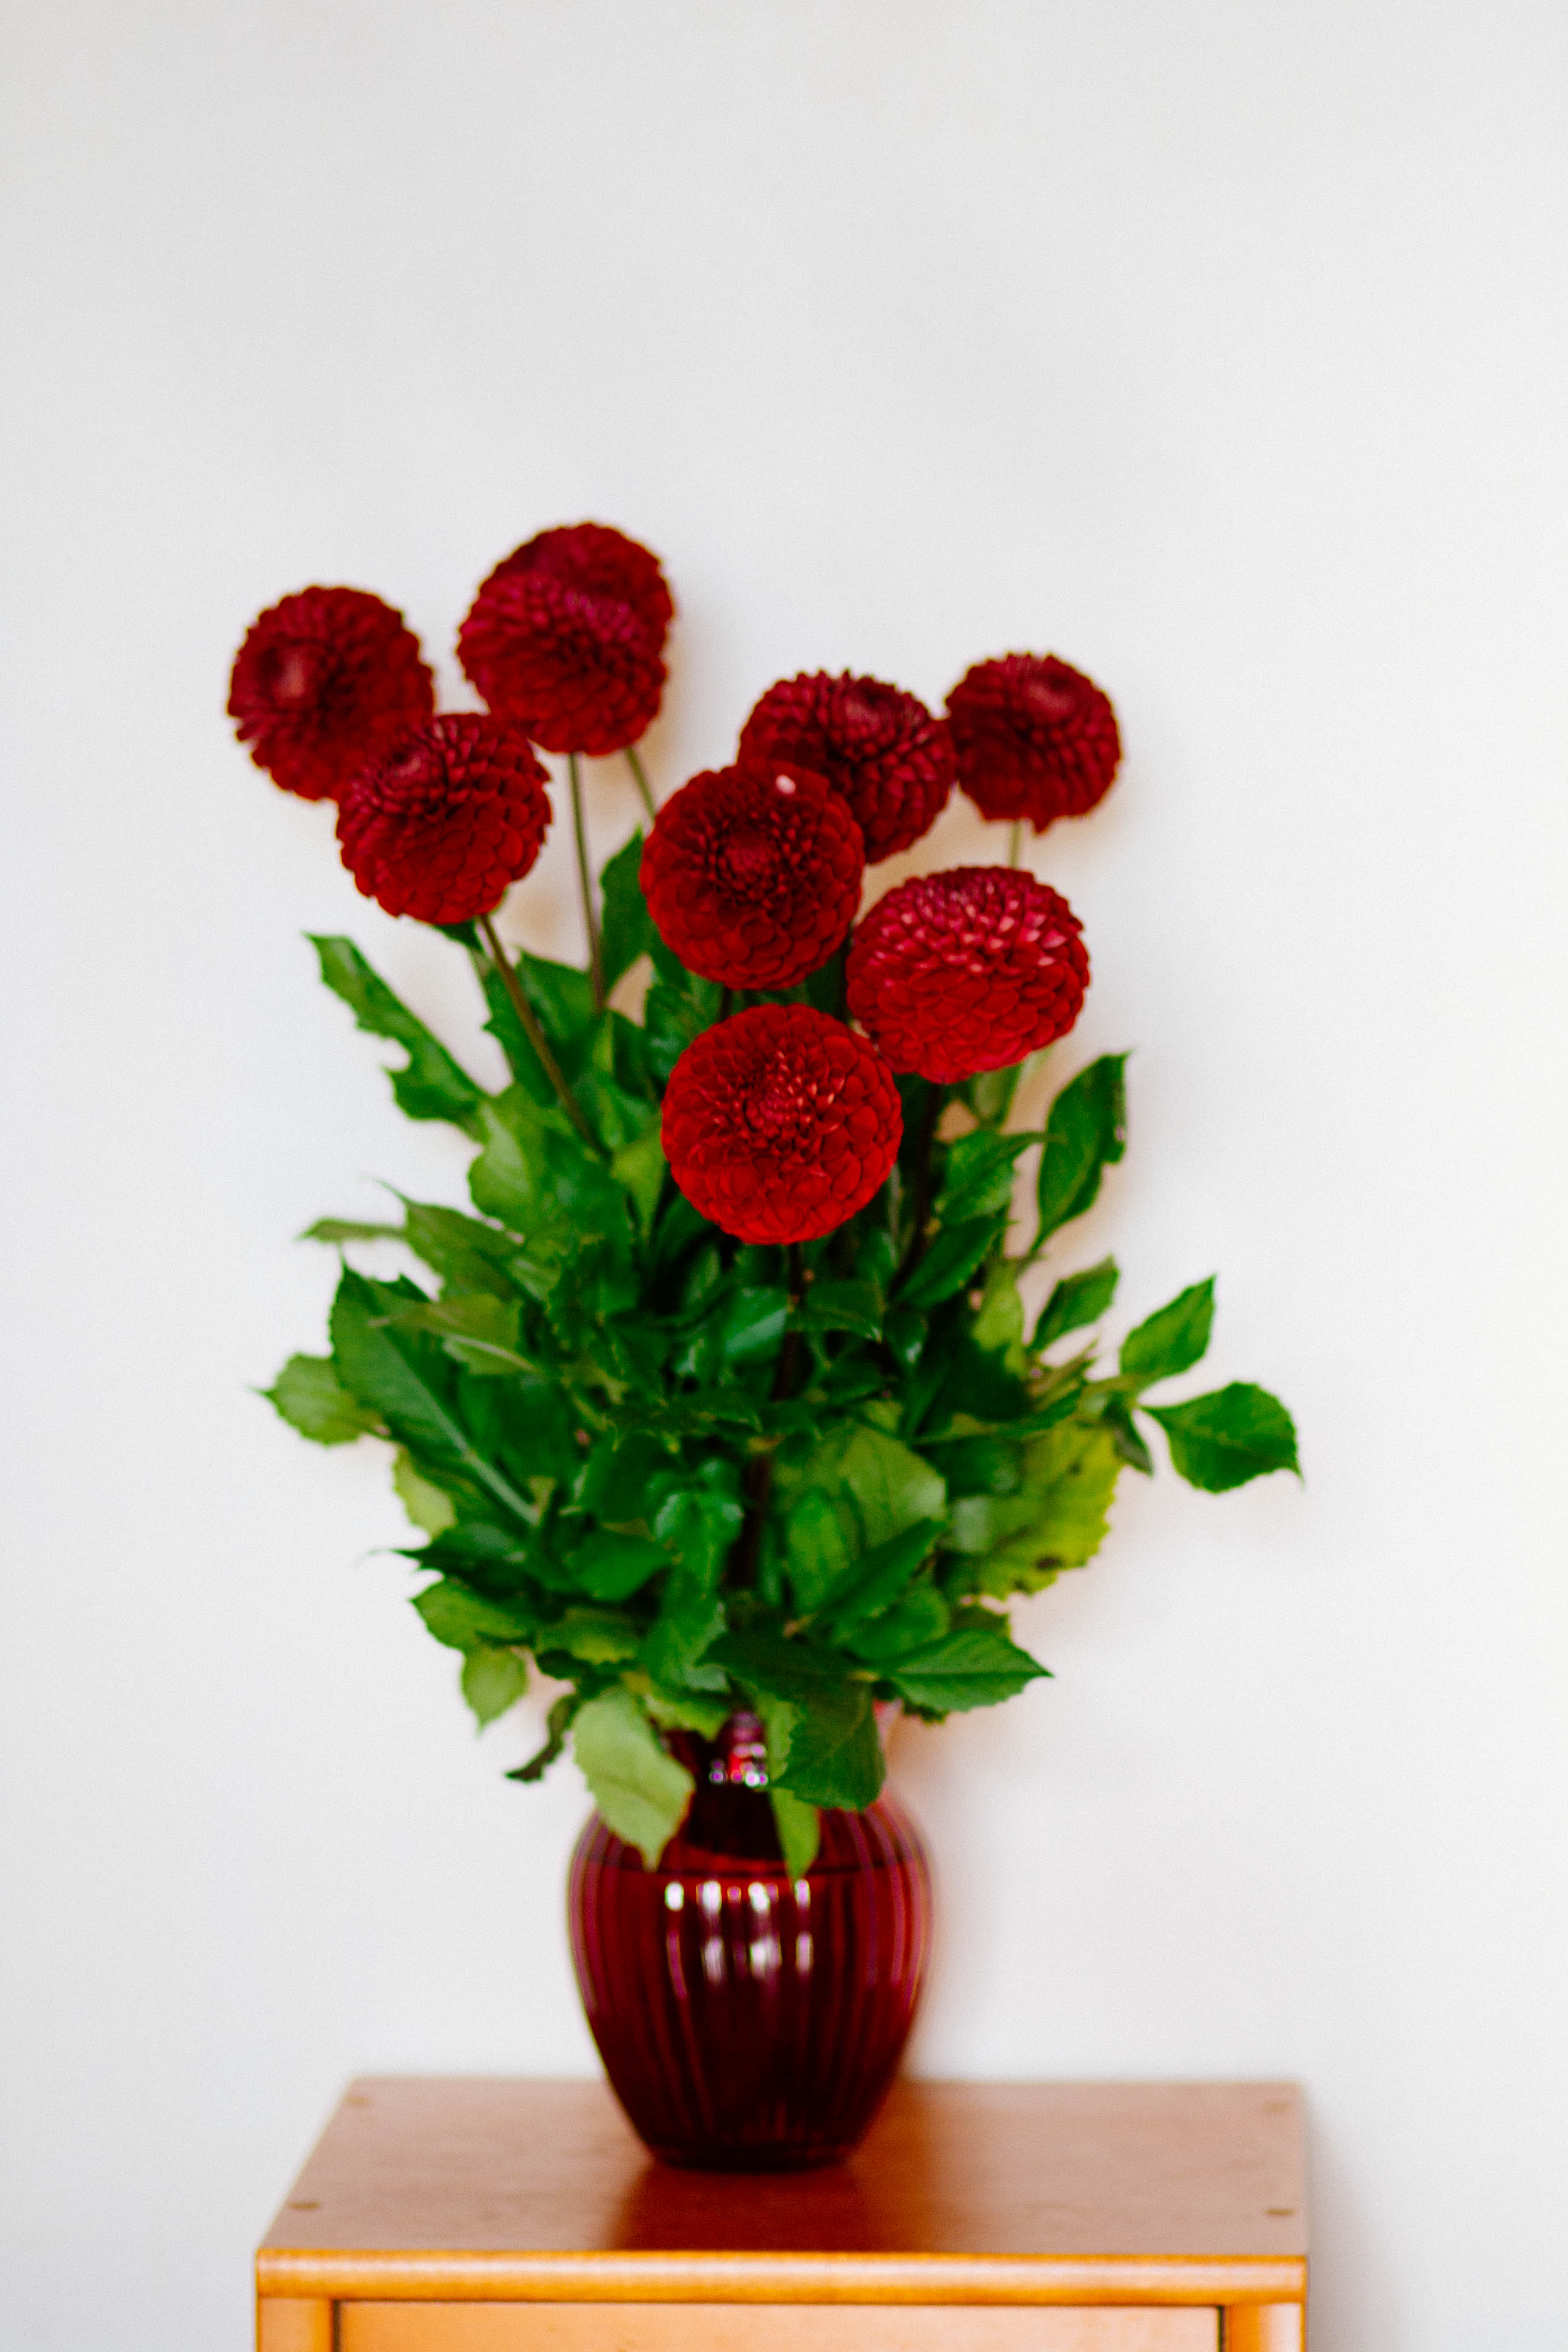 Design Flower Vases red flower vase cenedese murano purple alexandrite italian art arrangements glads delivery to bengaluru free download